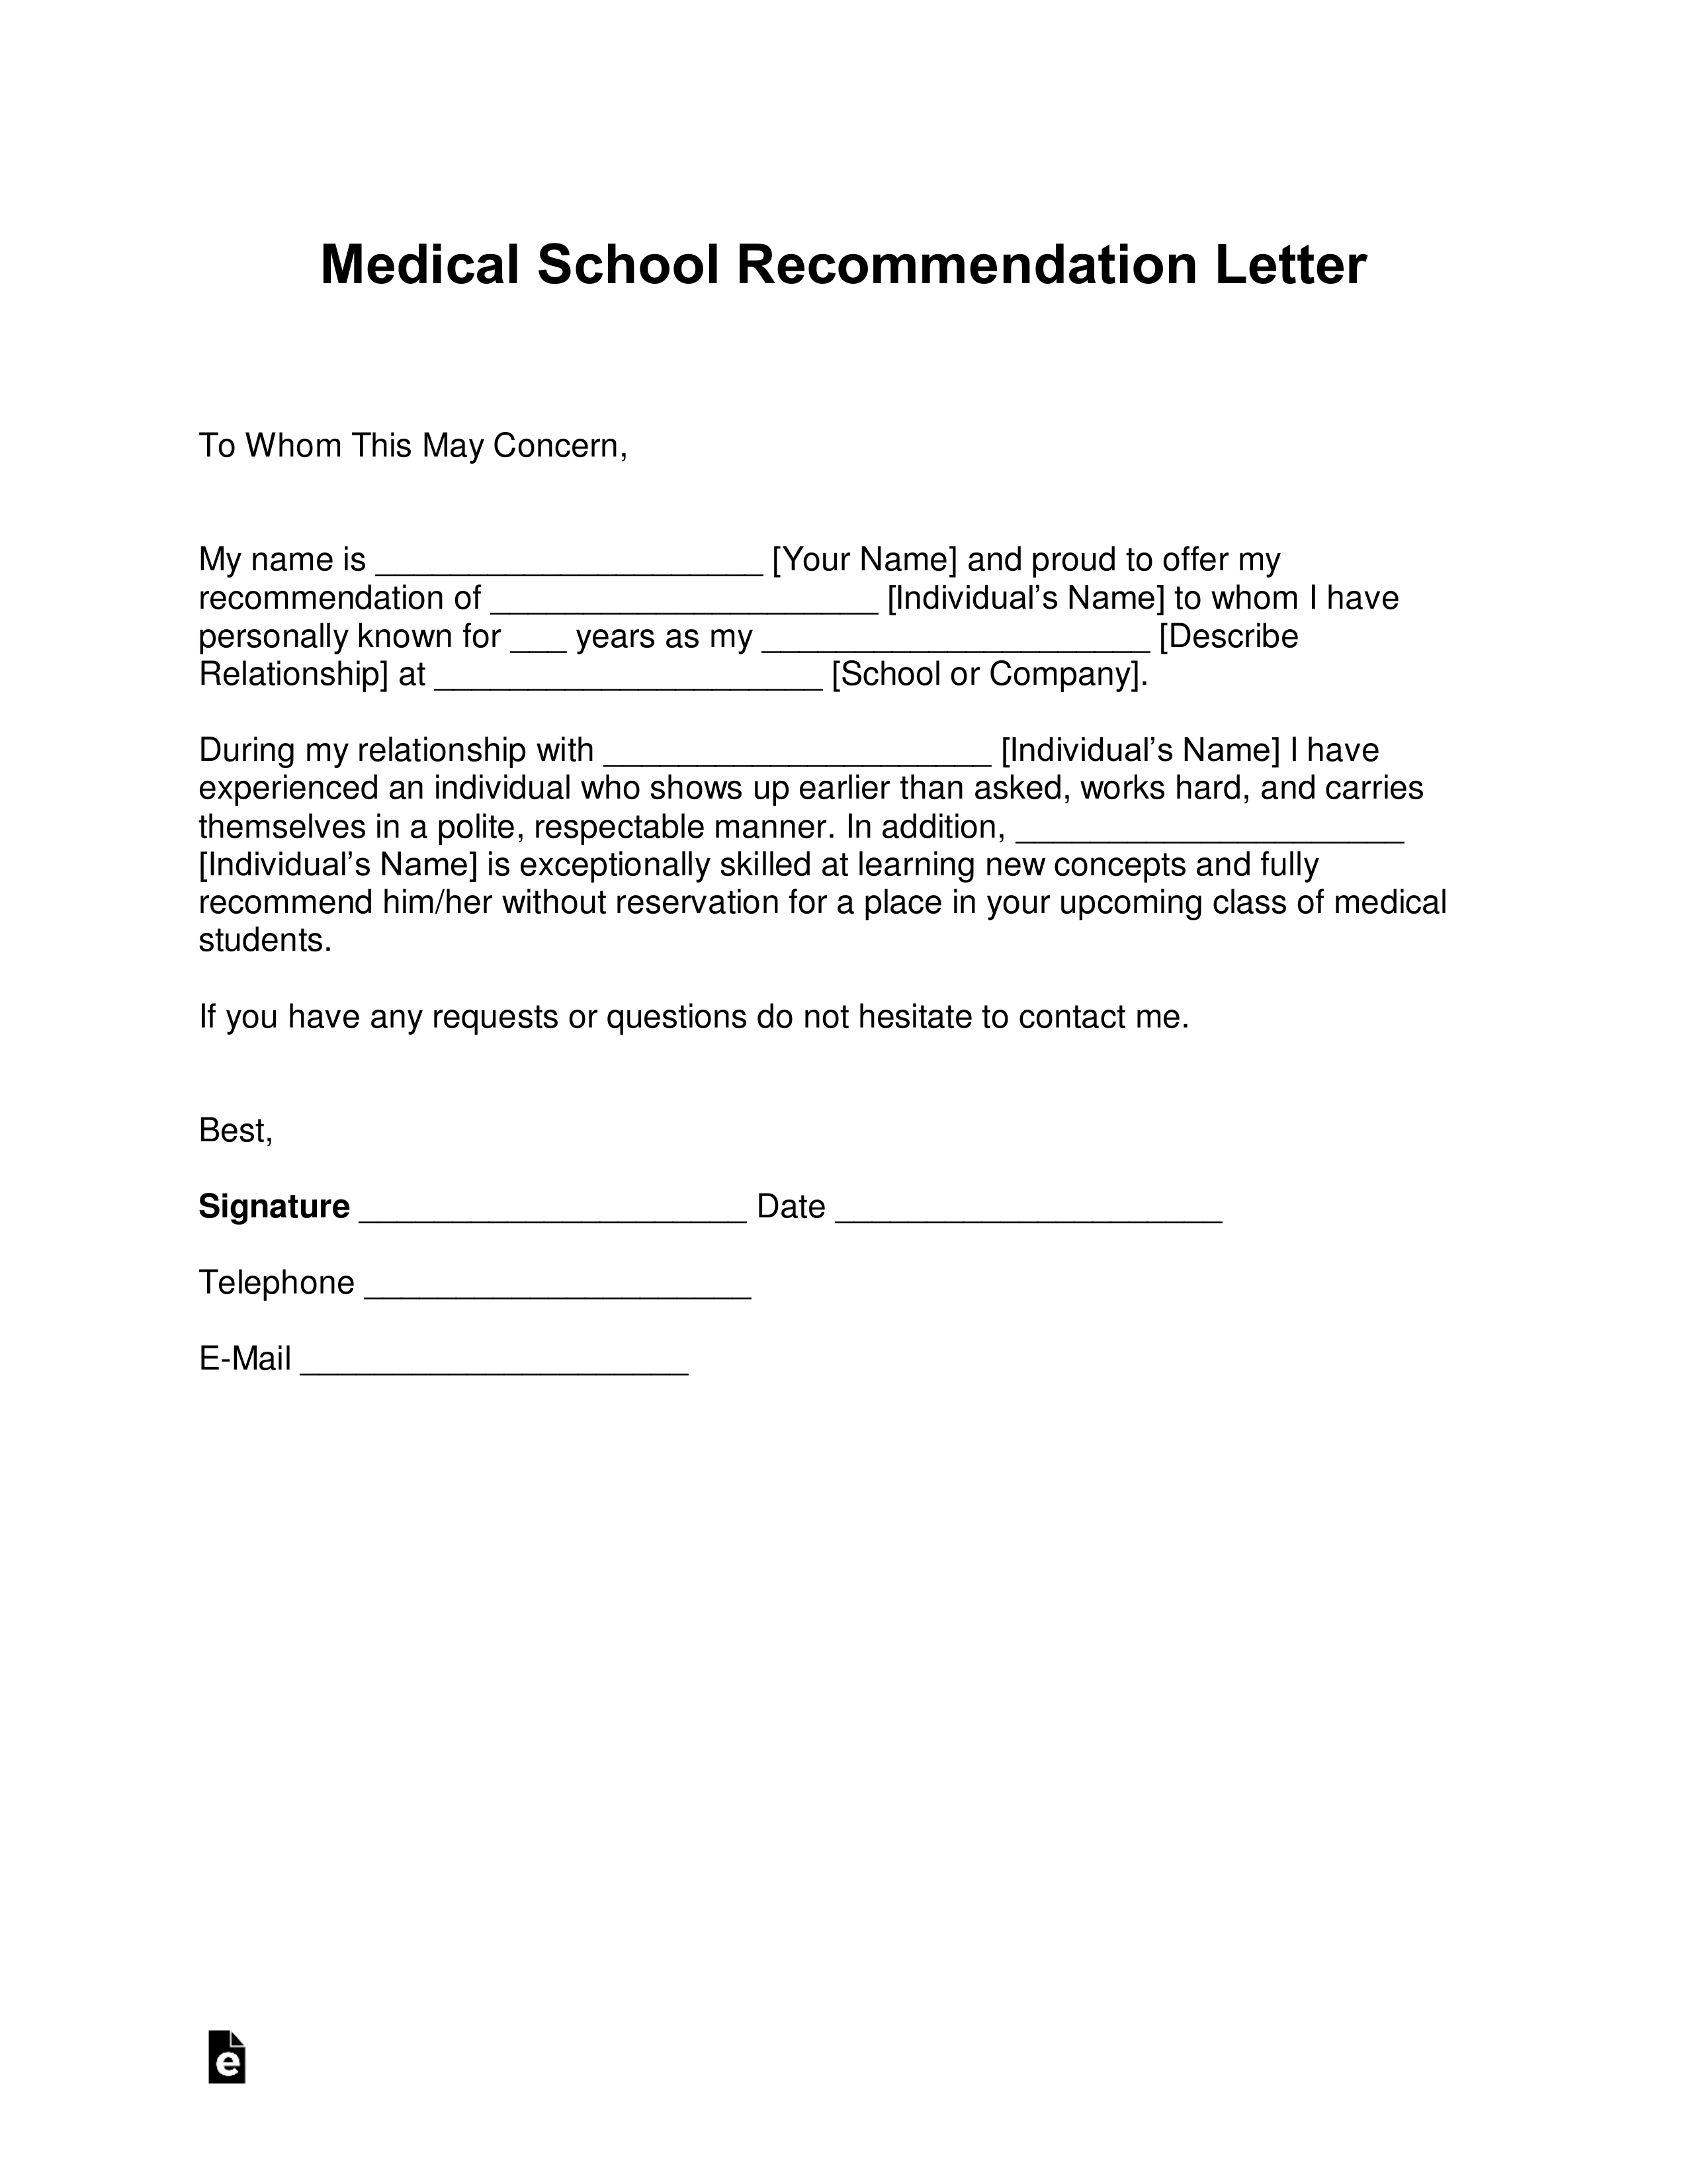 What to write in carms application undergraduate clinical electives